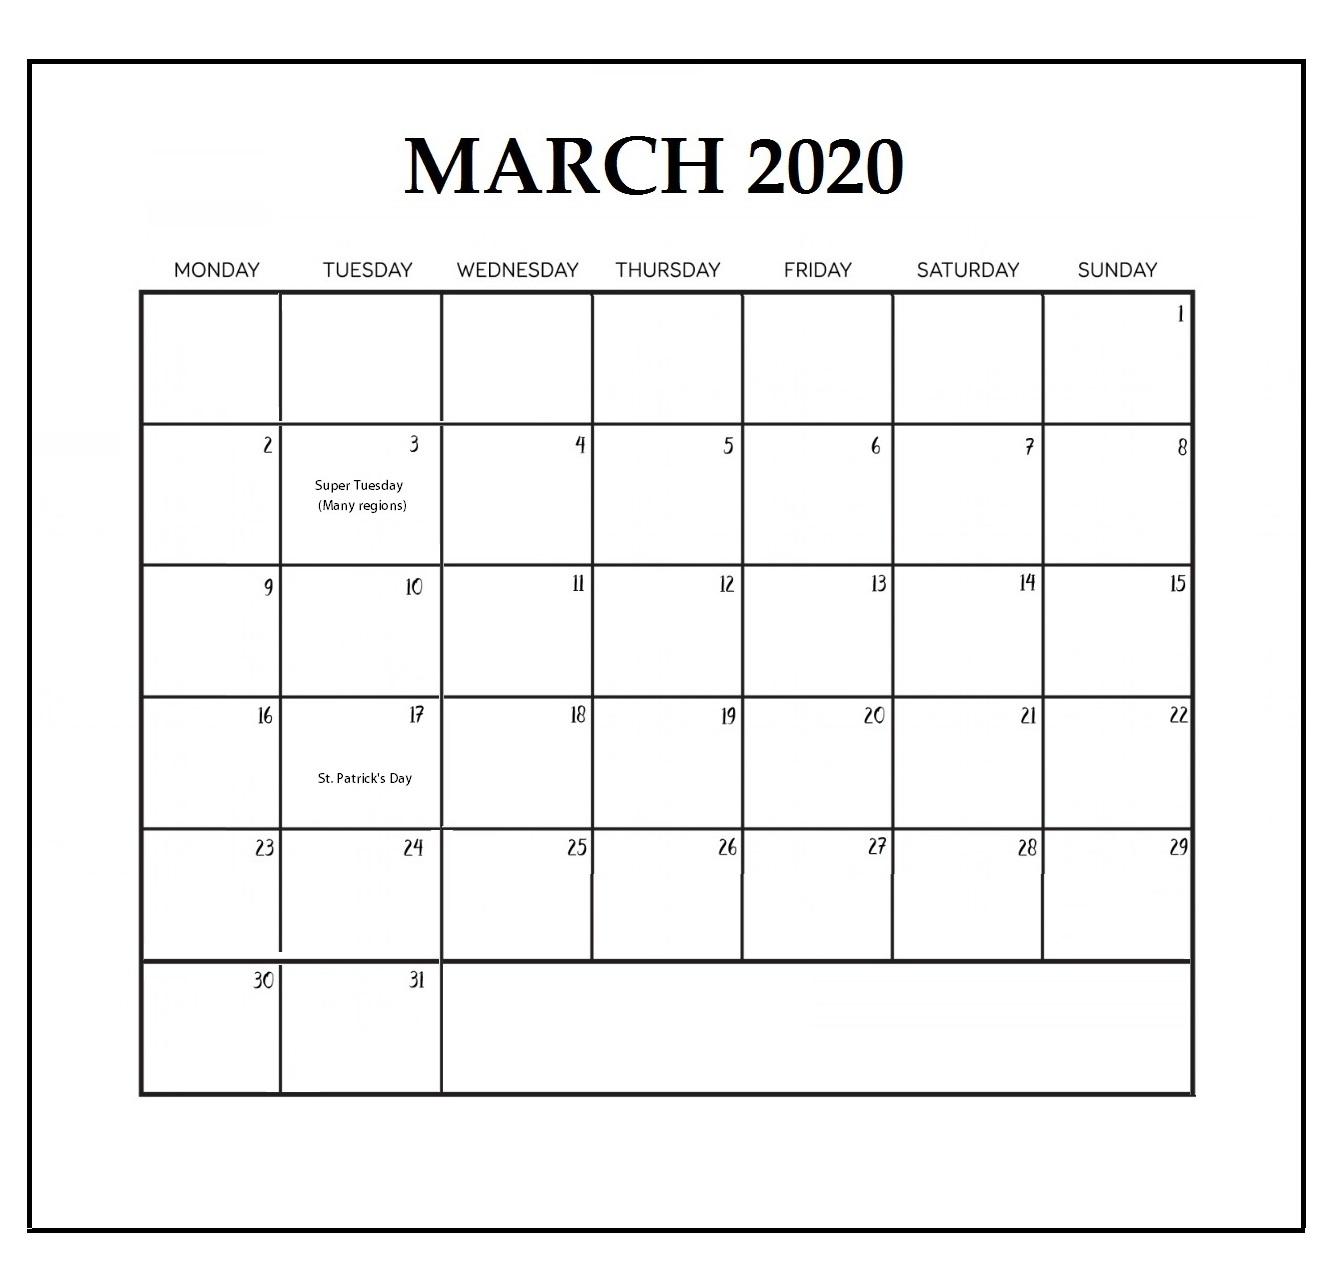 March 2020 Holidays Calendar